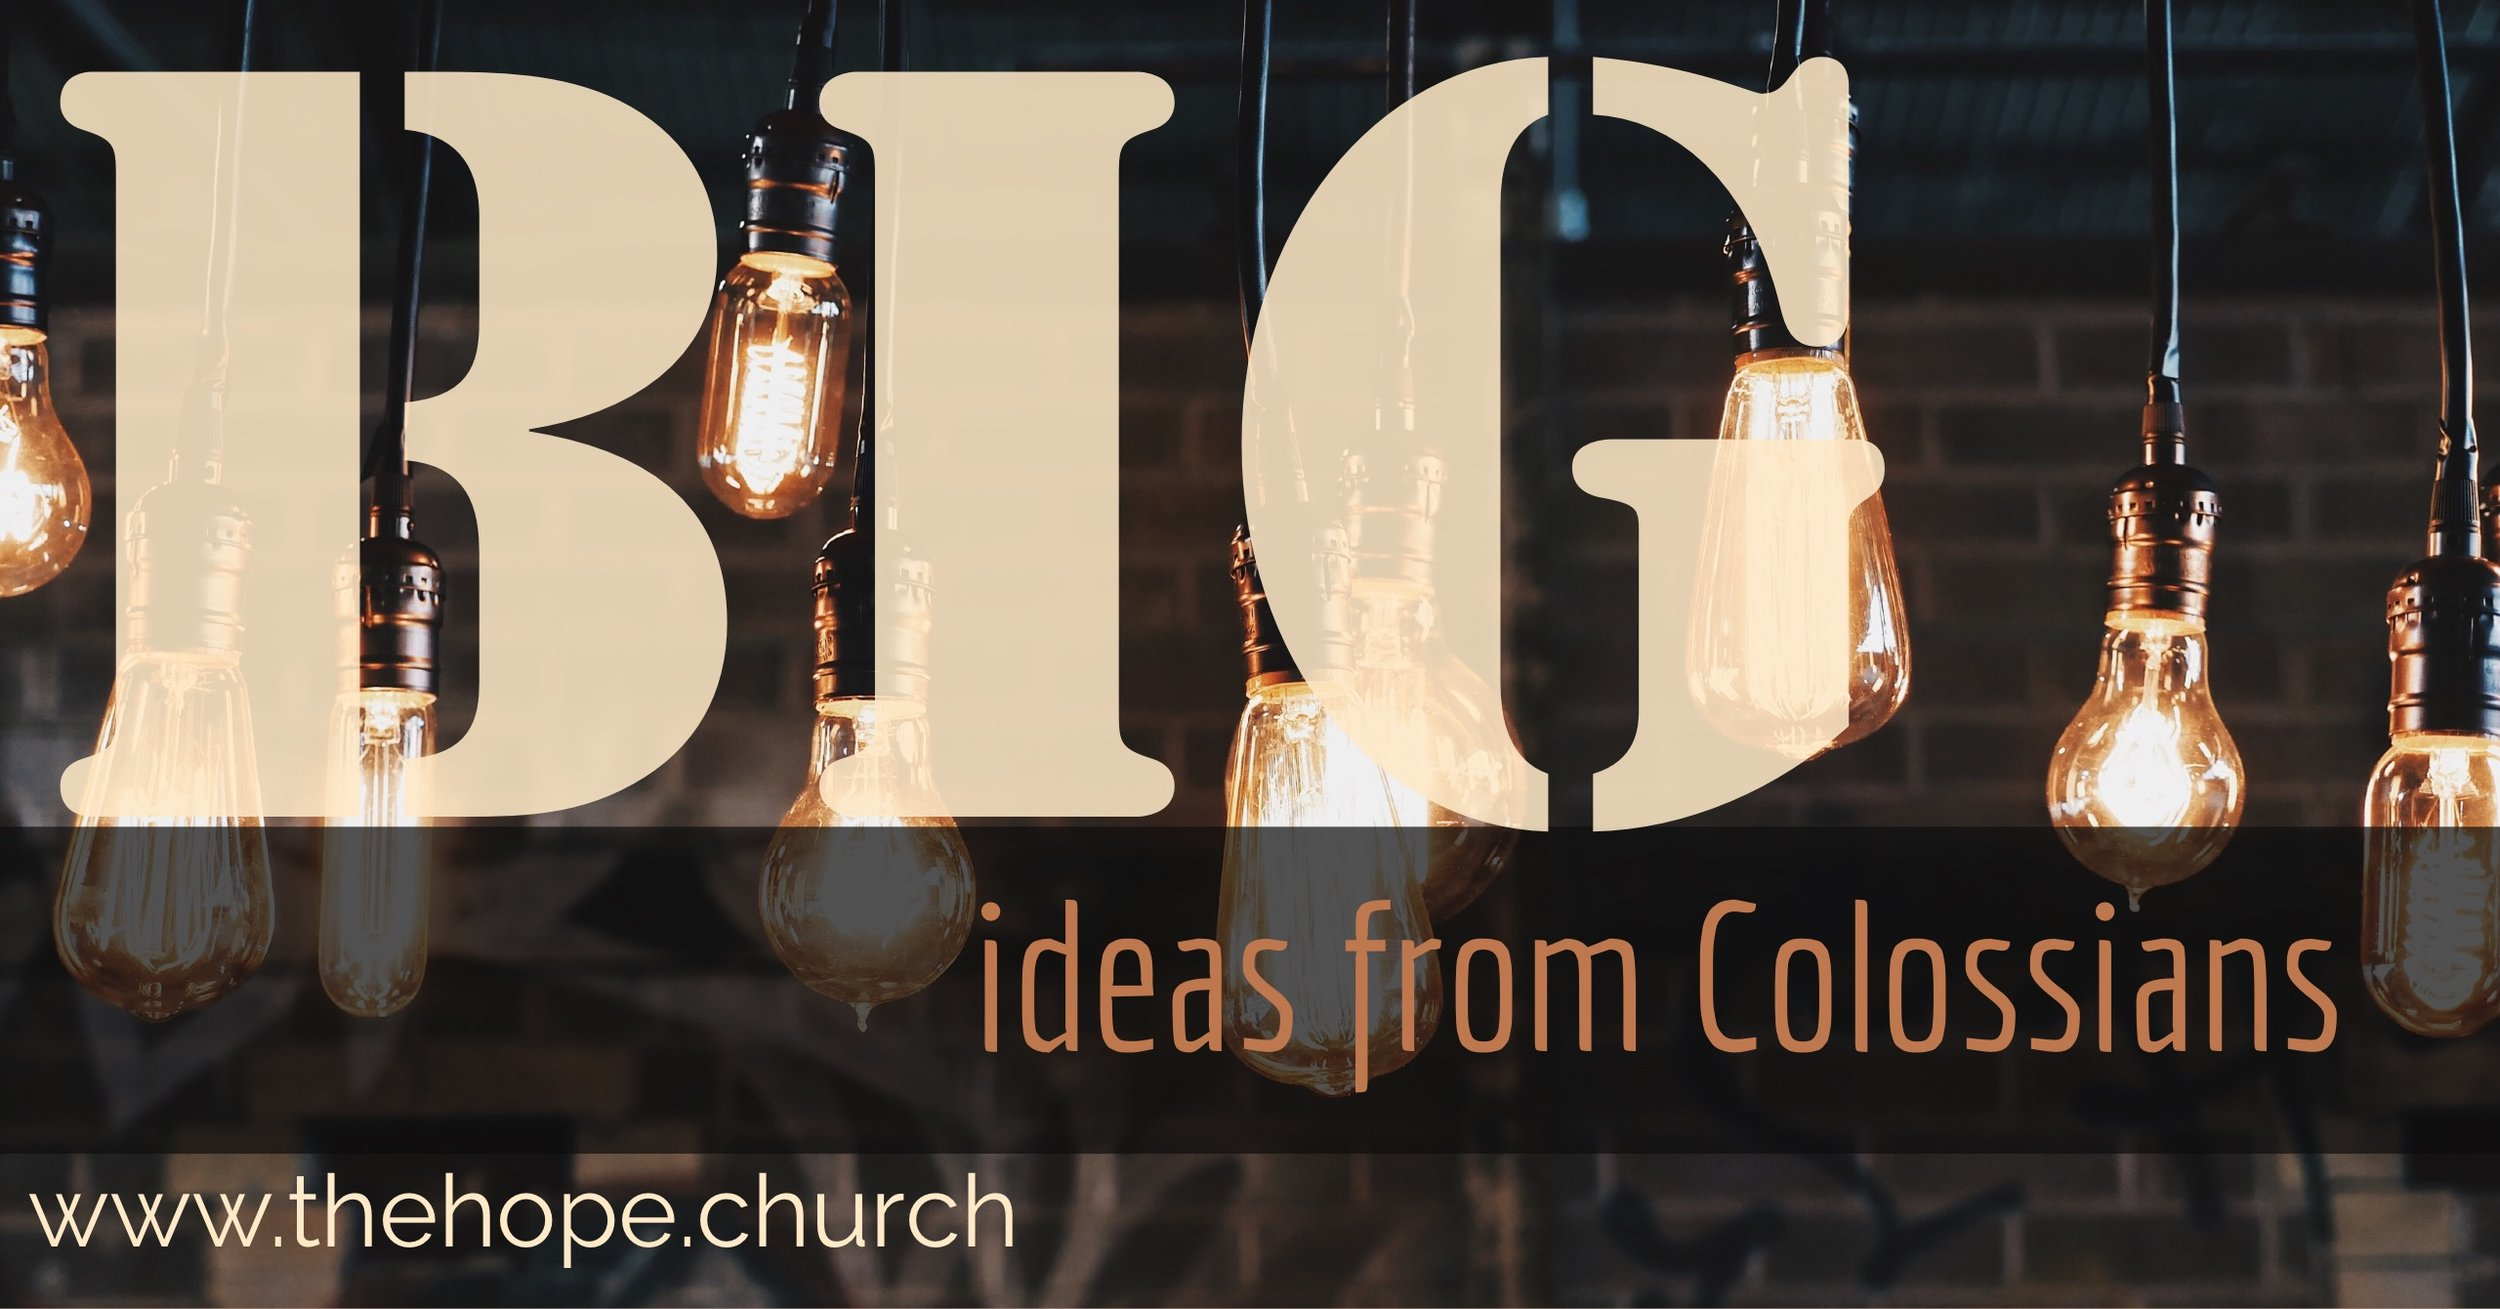 The letter to the Colossians may be short, but it's packed full of Big Ideas that should influence how we work, live and pray.